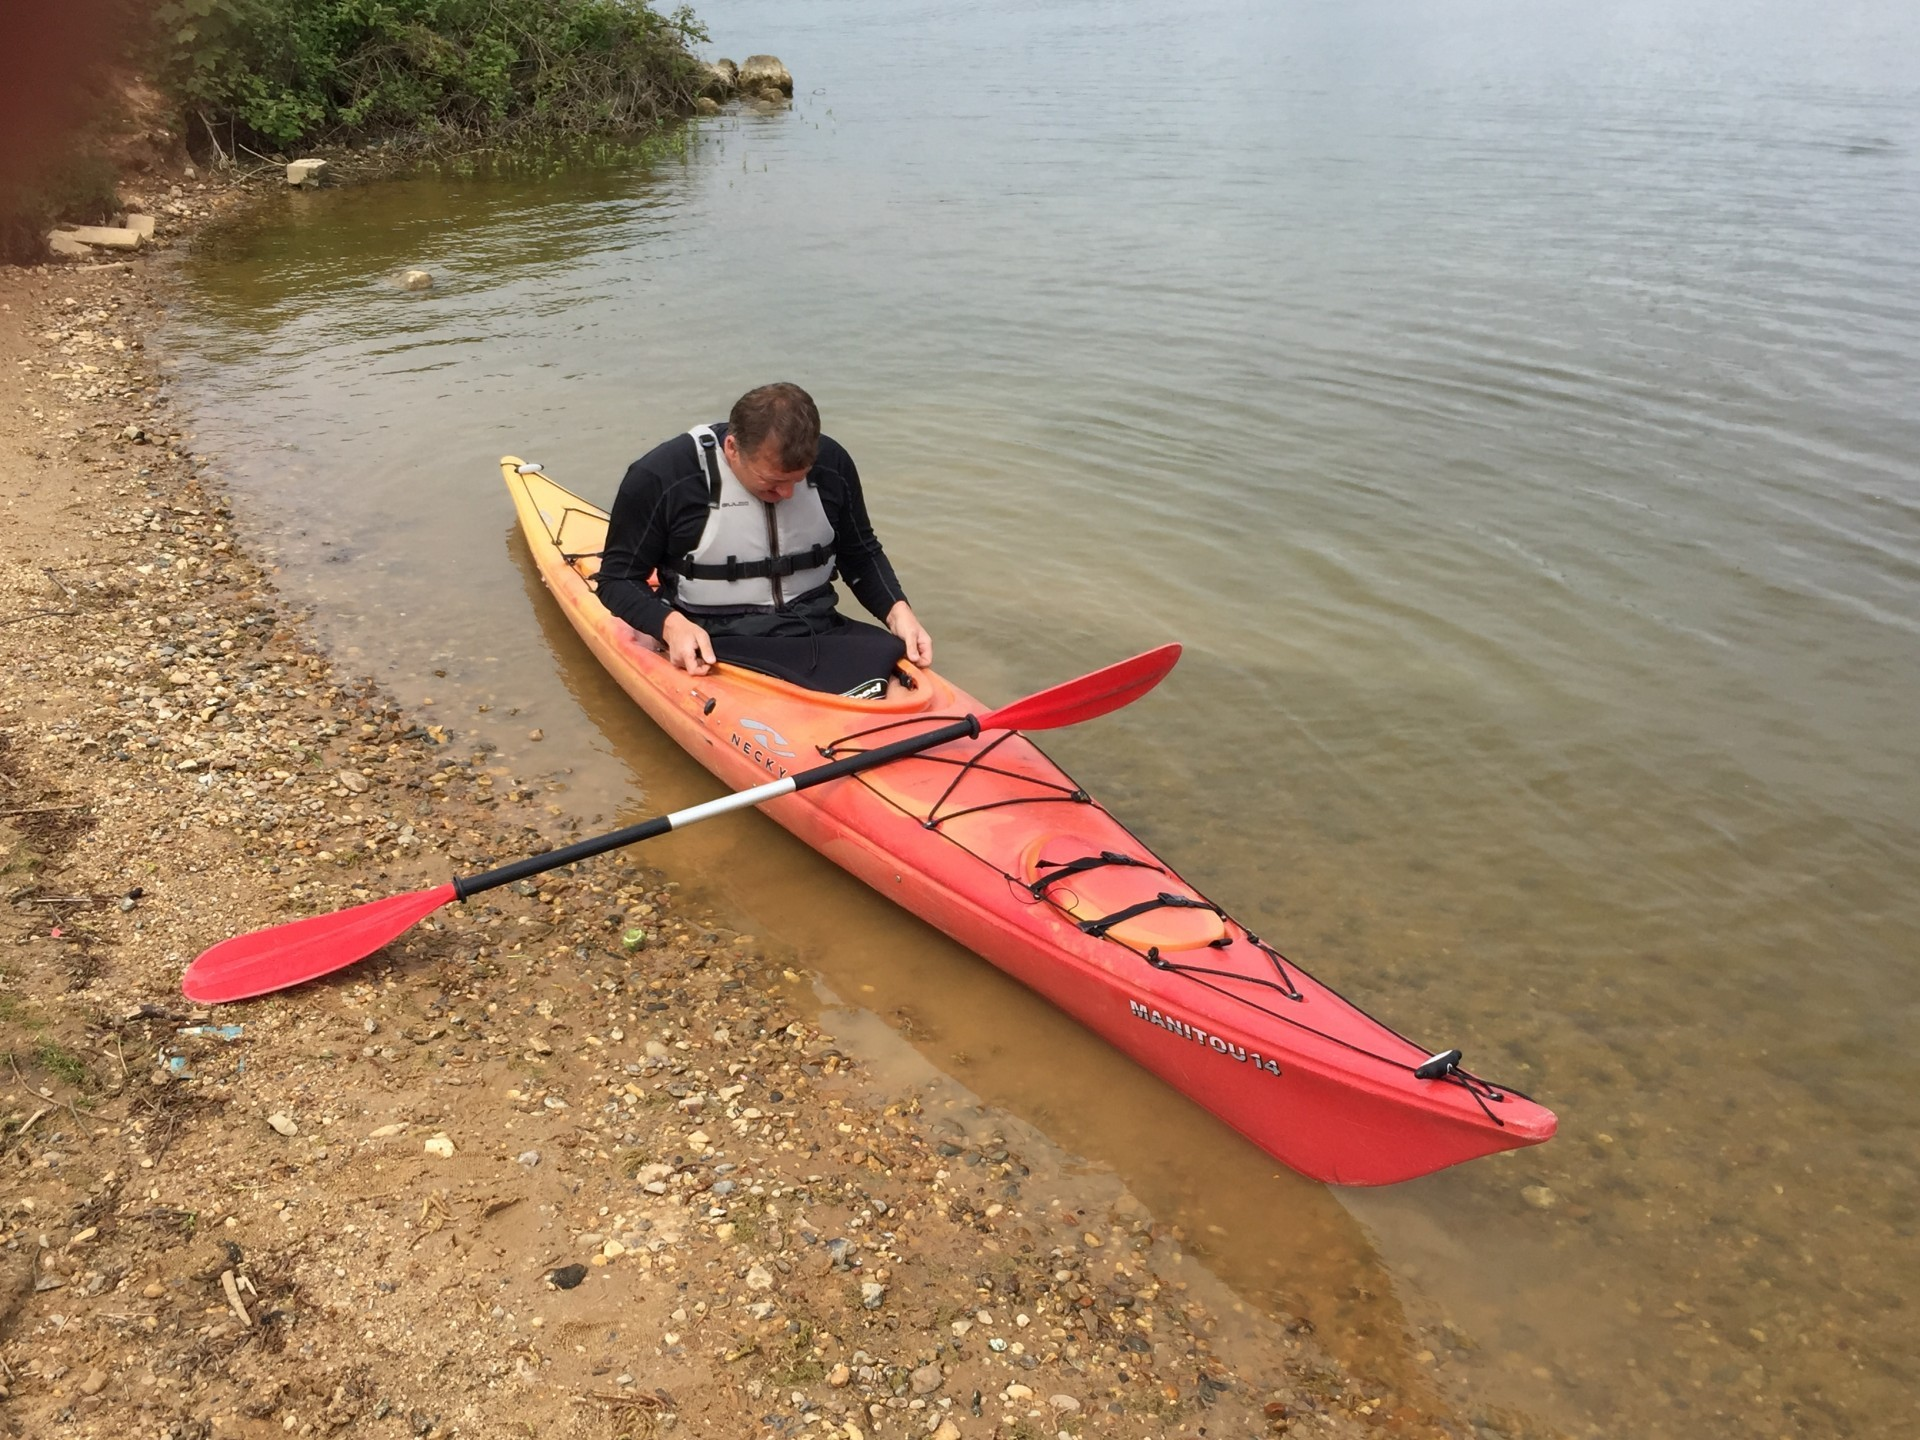 A red touring kayak being launched in flat water